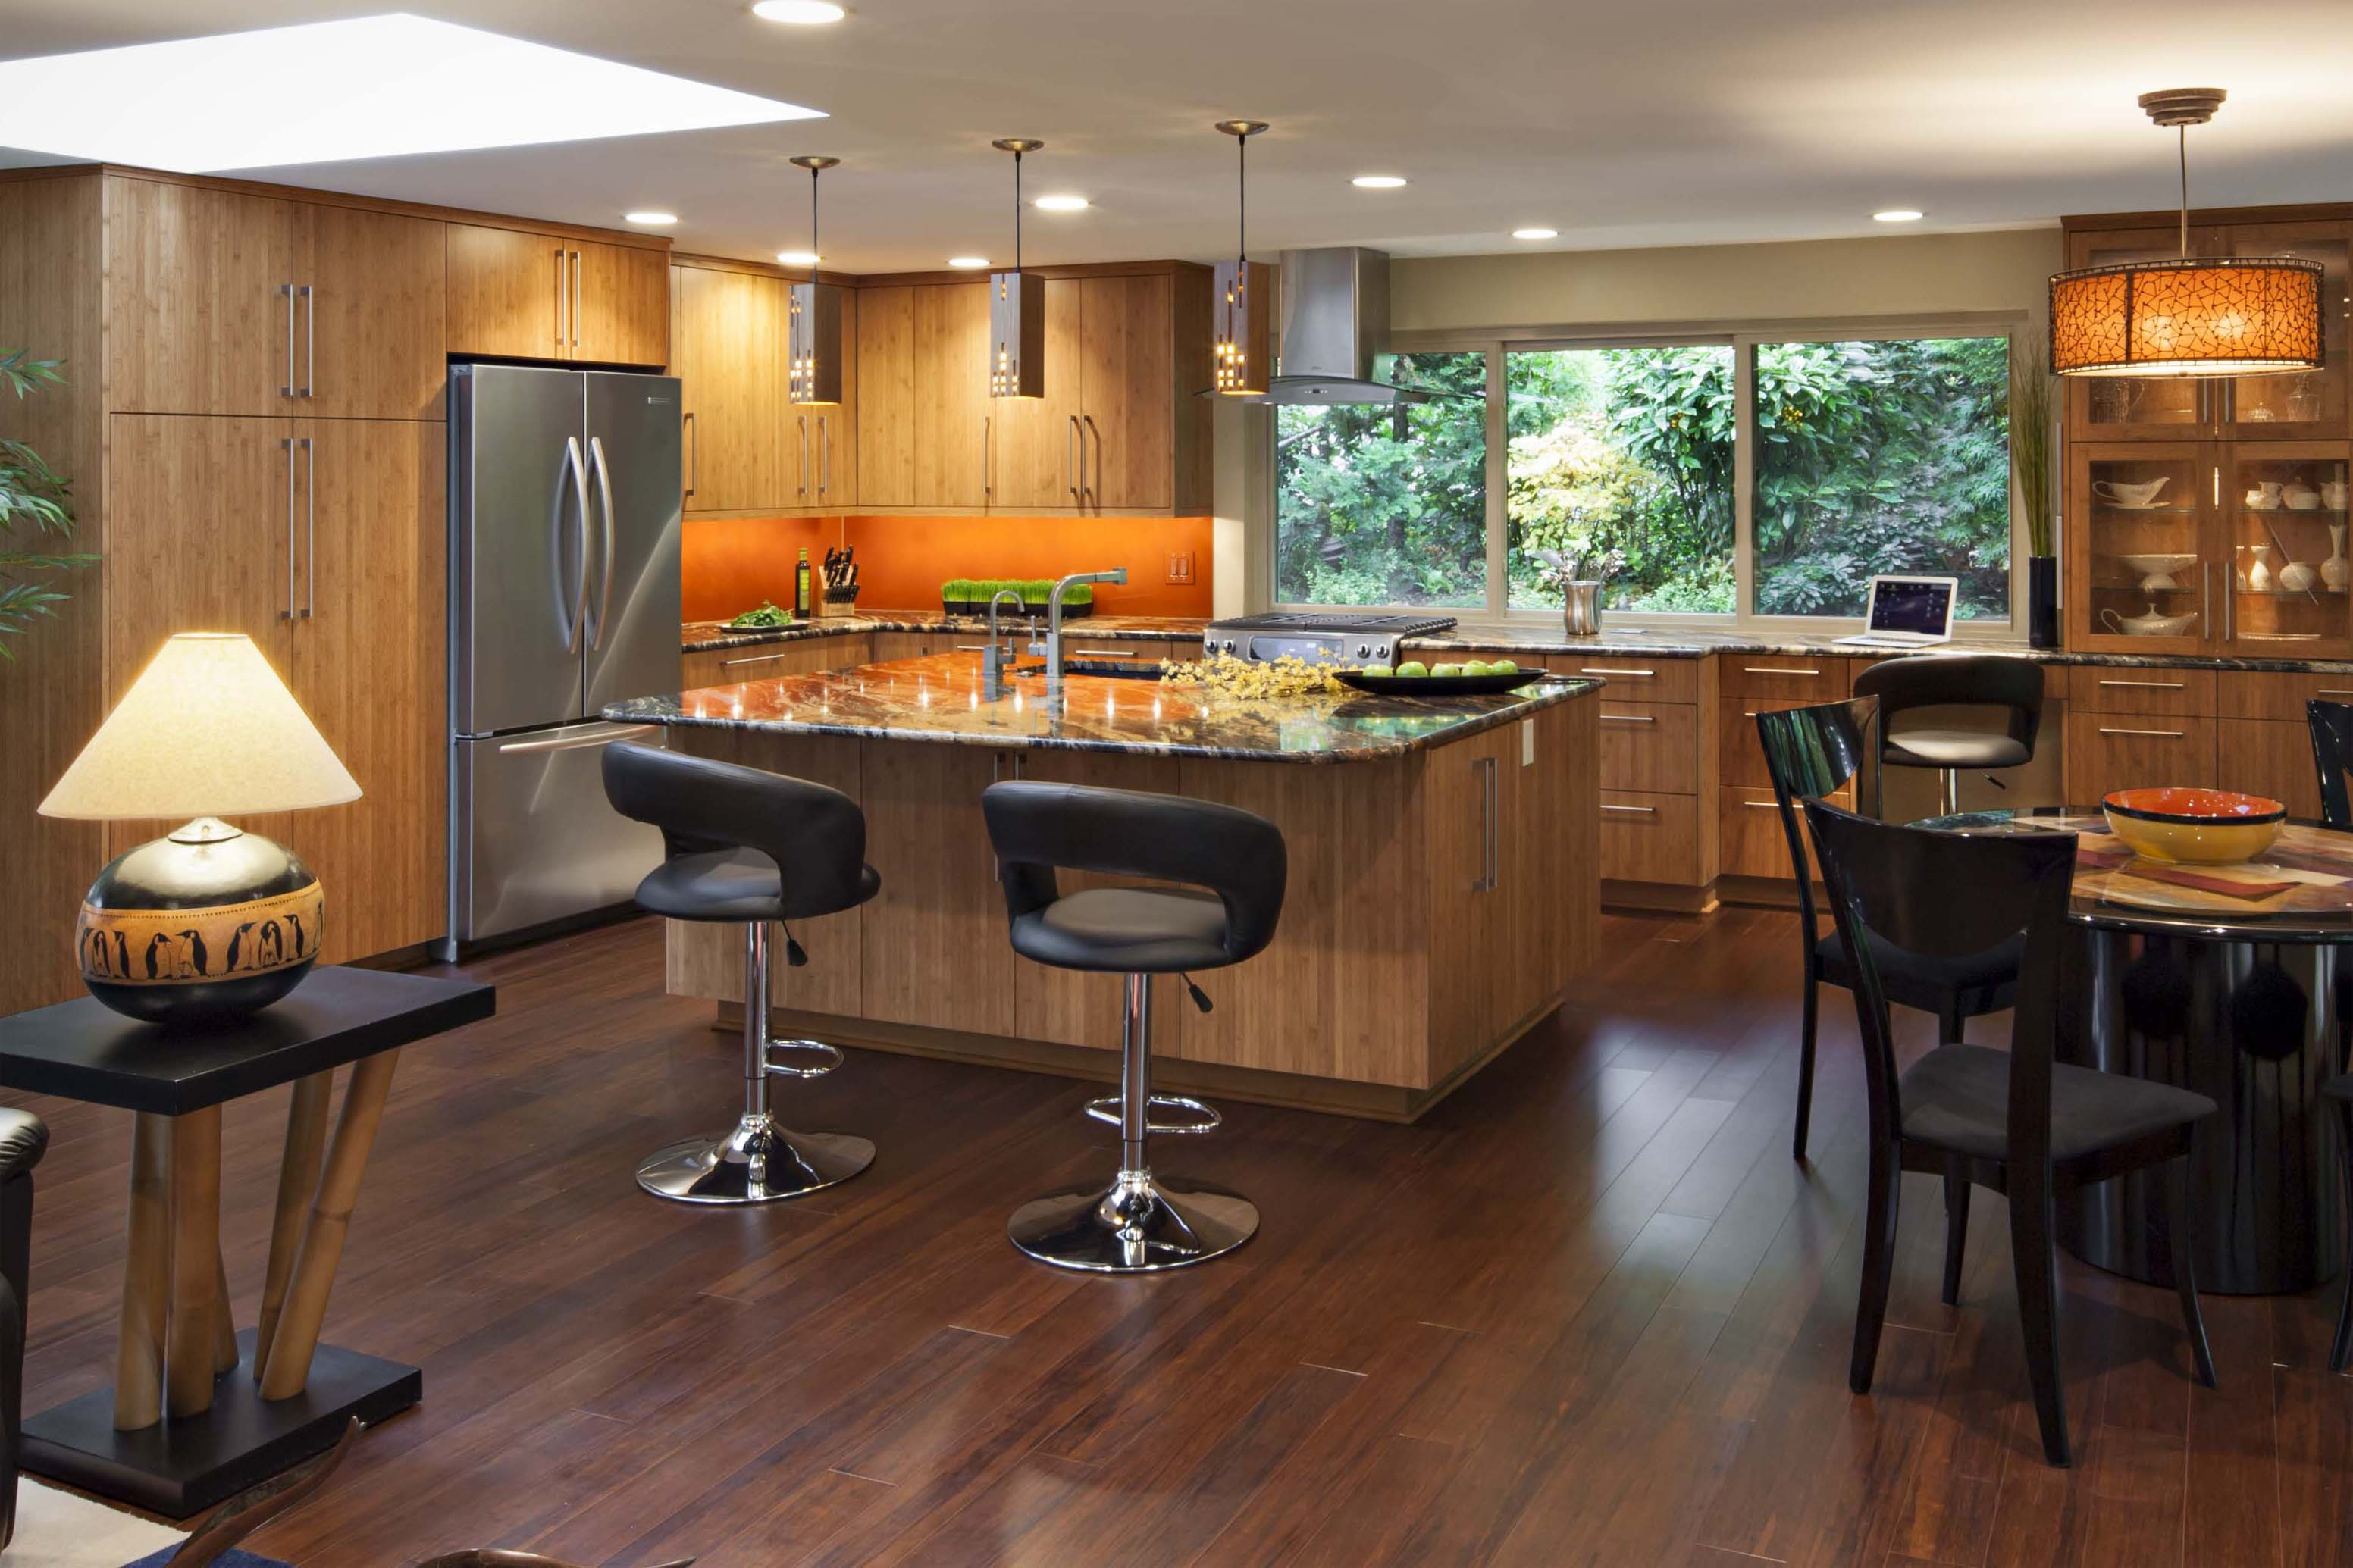 Seattle kitchen design home remodeling blog all things home kitchen and bath remodeling - Kitchen designers seattle ...